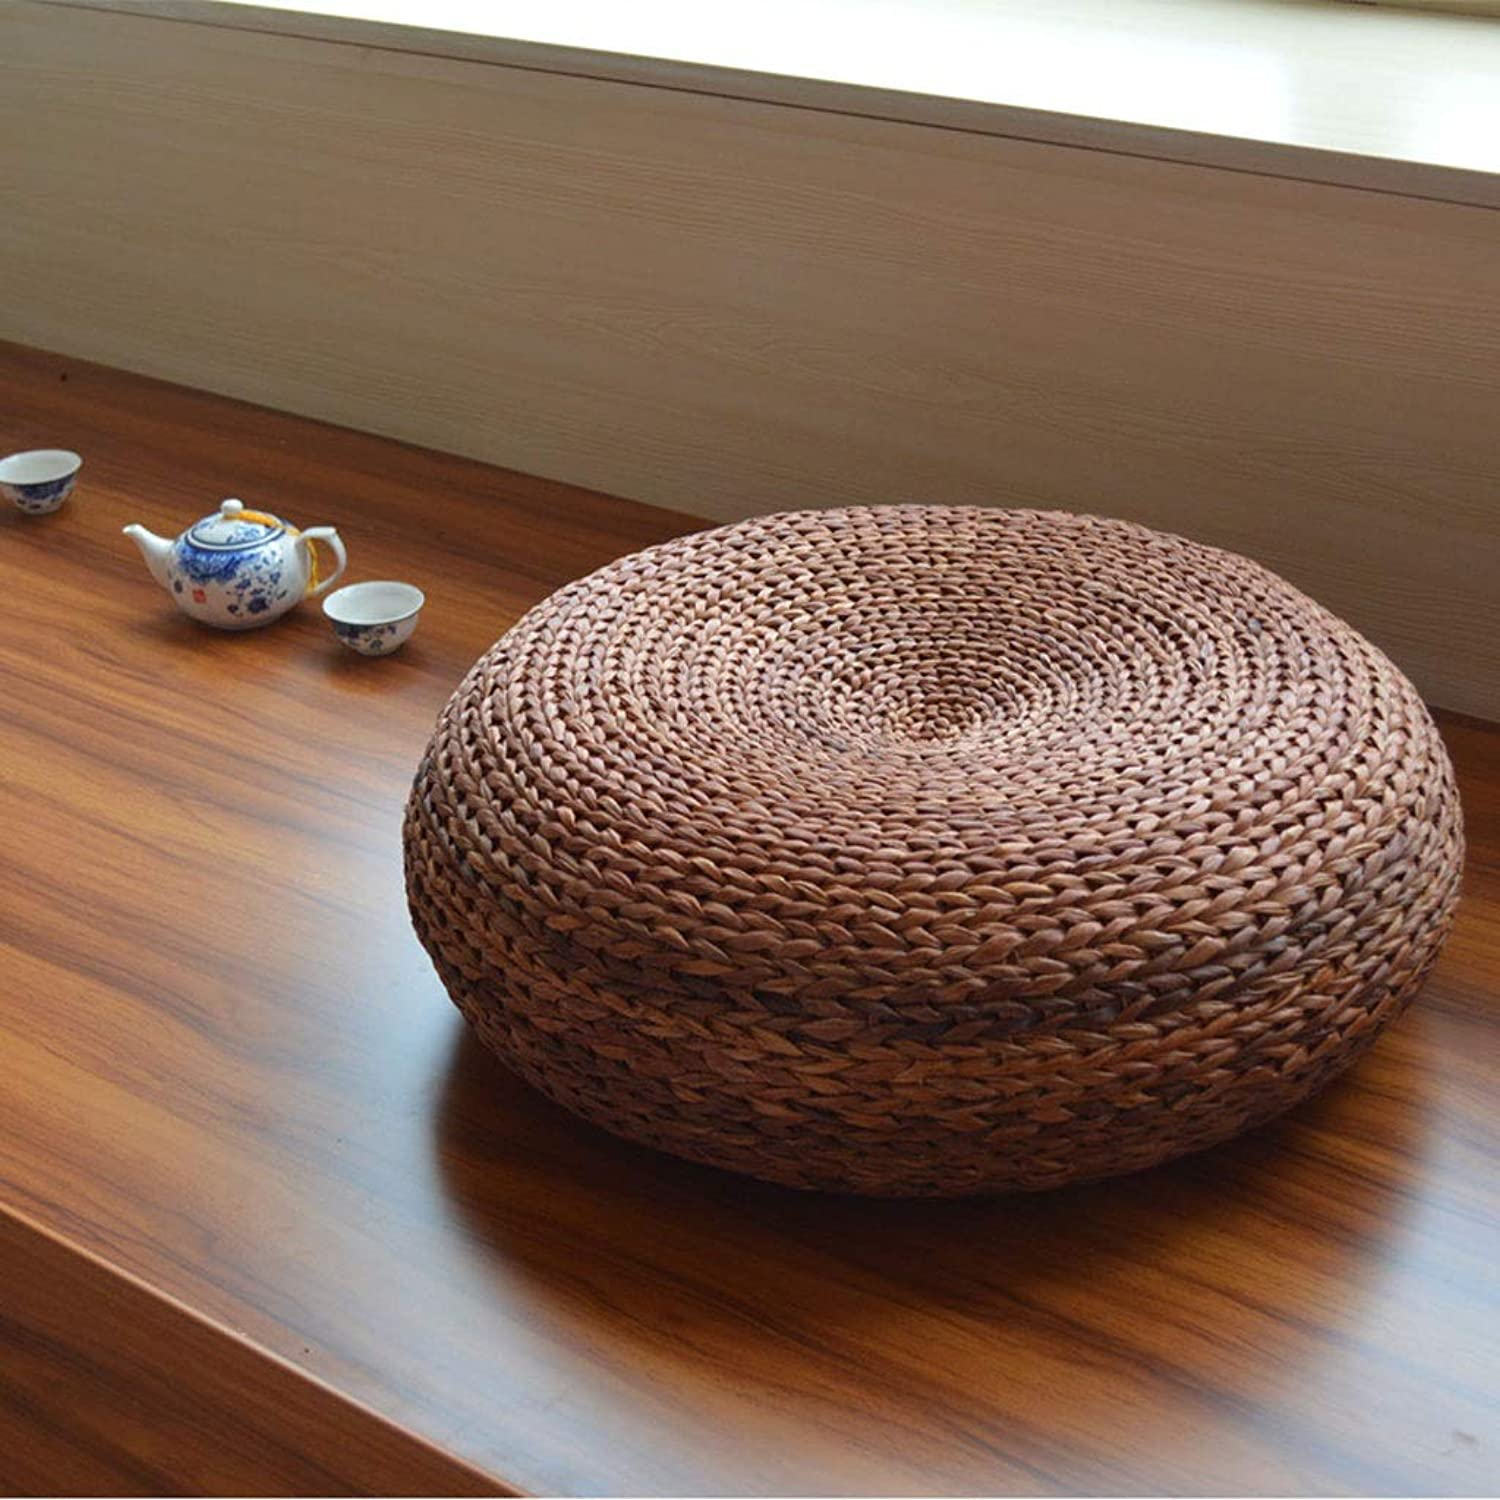 RXY-Wicker chair Japanese Style Straw Futon Cushion, Home Thickening Tea Ceremony Rattan Tatami Mat Floor Grass Mat (color   A, Size   40x17cm)